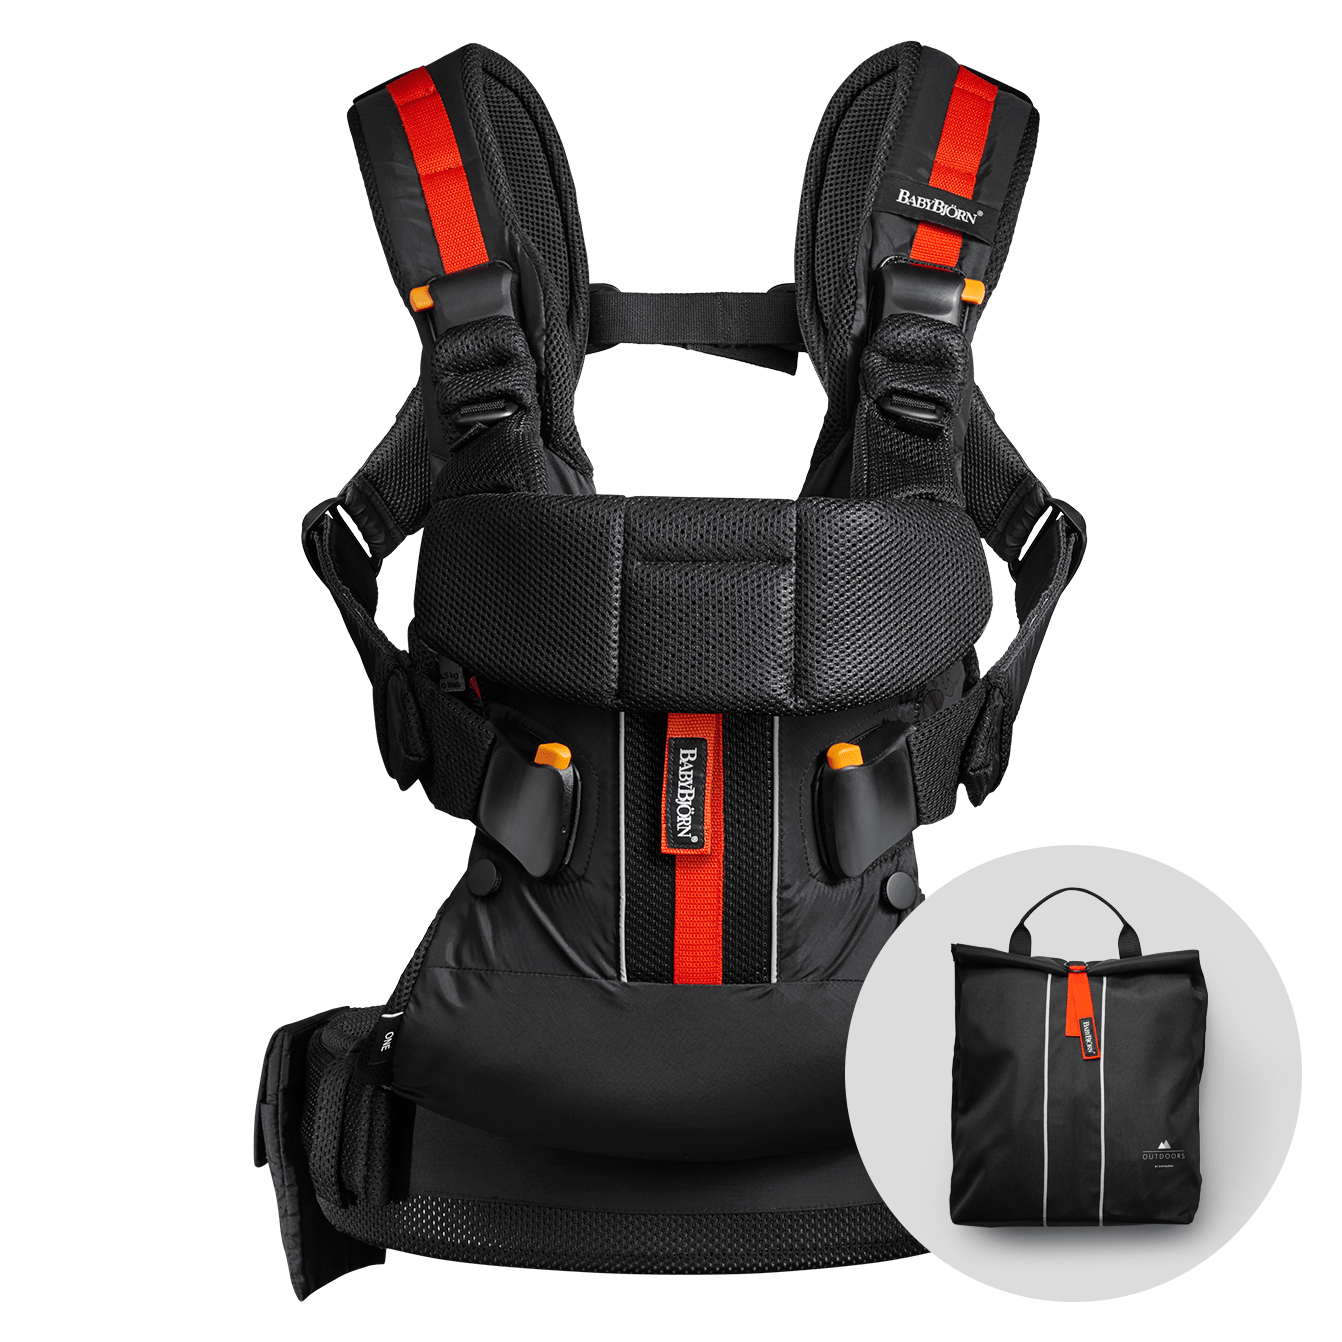 BABYBJÖRN Baby Carrier One Outdoors in black, perfect for an active life.